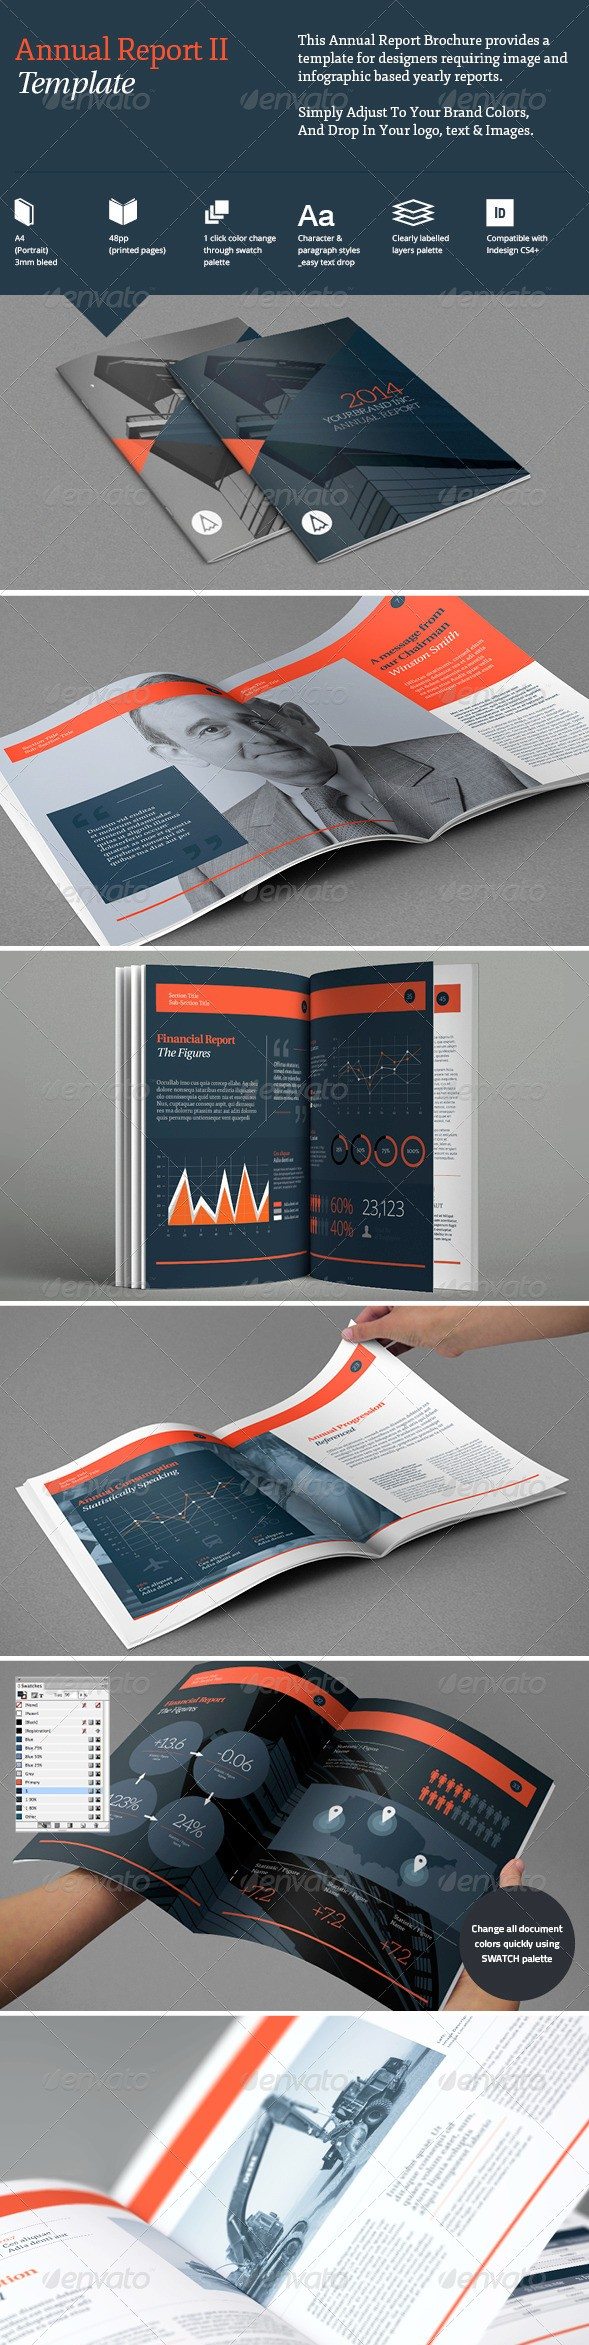 Annual Report II